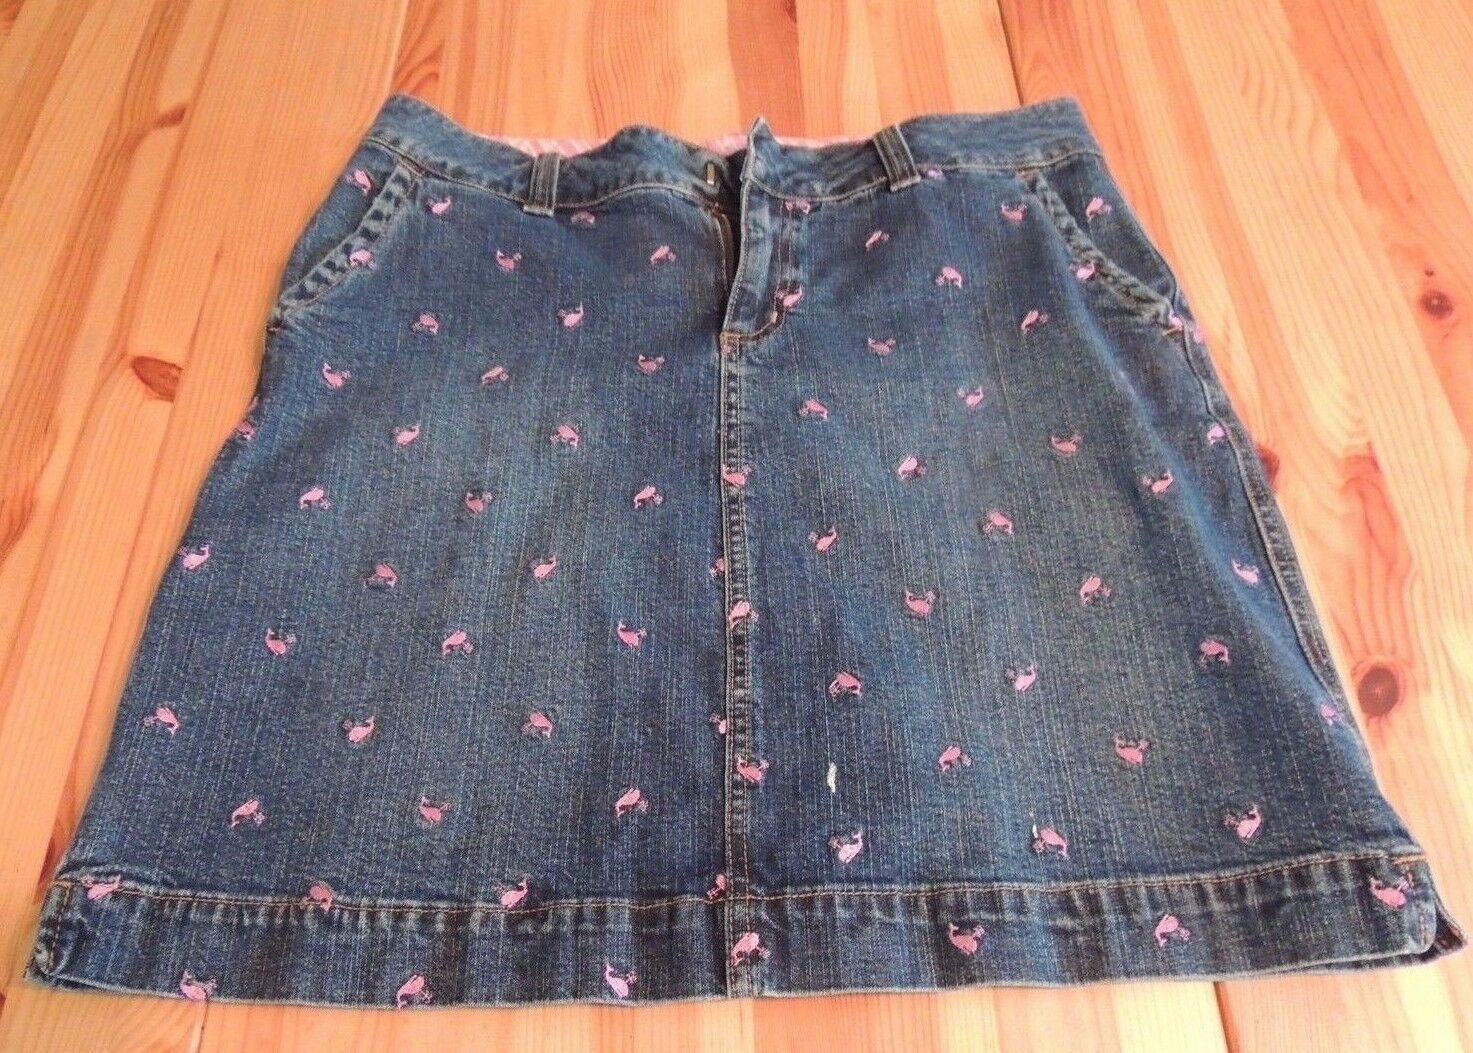 Lilly Pulitzer PINK WHALE blueE DENIM JEAN SKIRT Size 6 Embroidered Cotton Knee